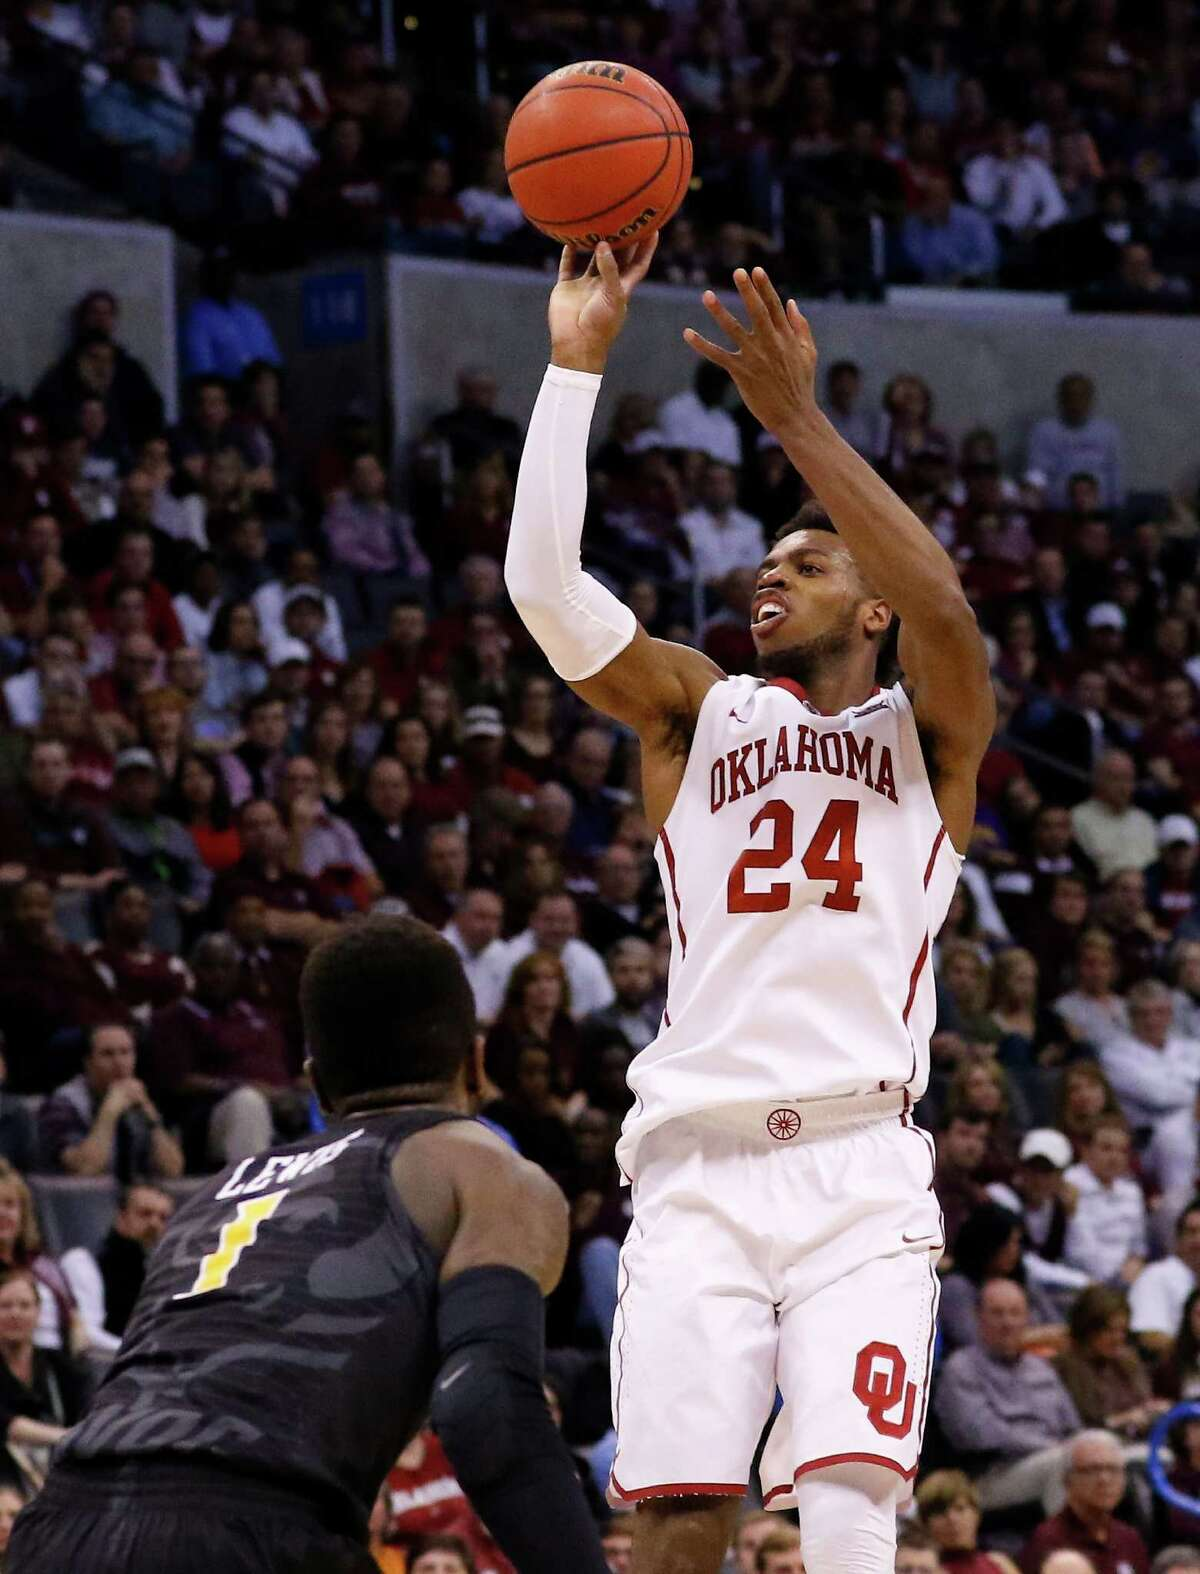 Oklahoma's Buddy Hield is the college game's version of Stephen Curry, but few young players are skilled enough to have the green light to shoot like Hield.